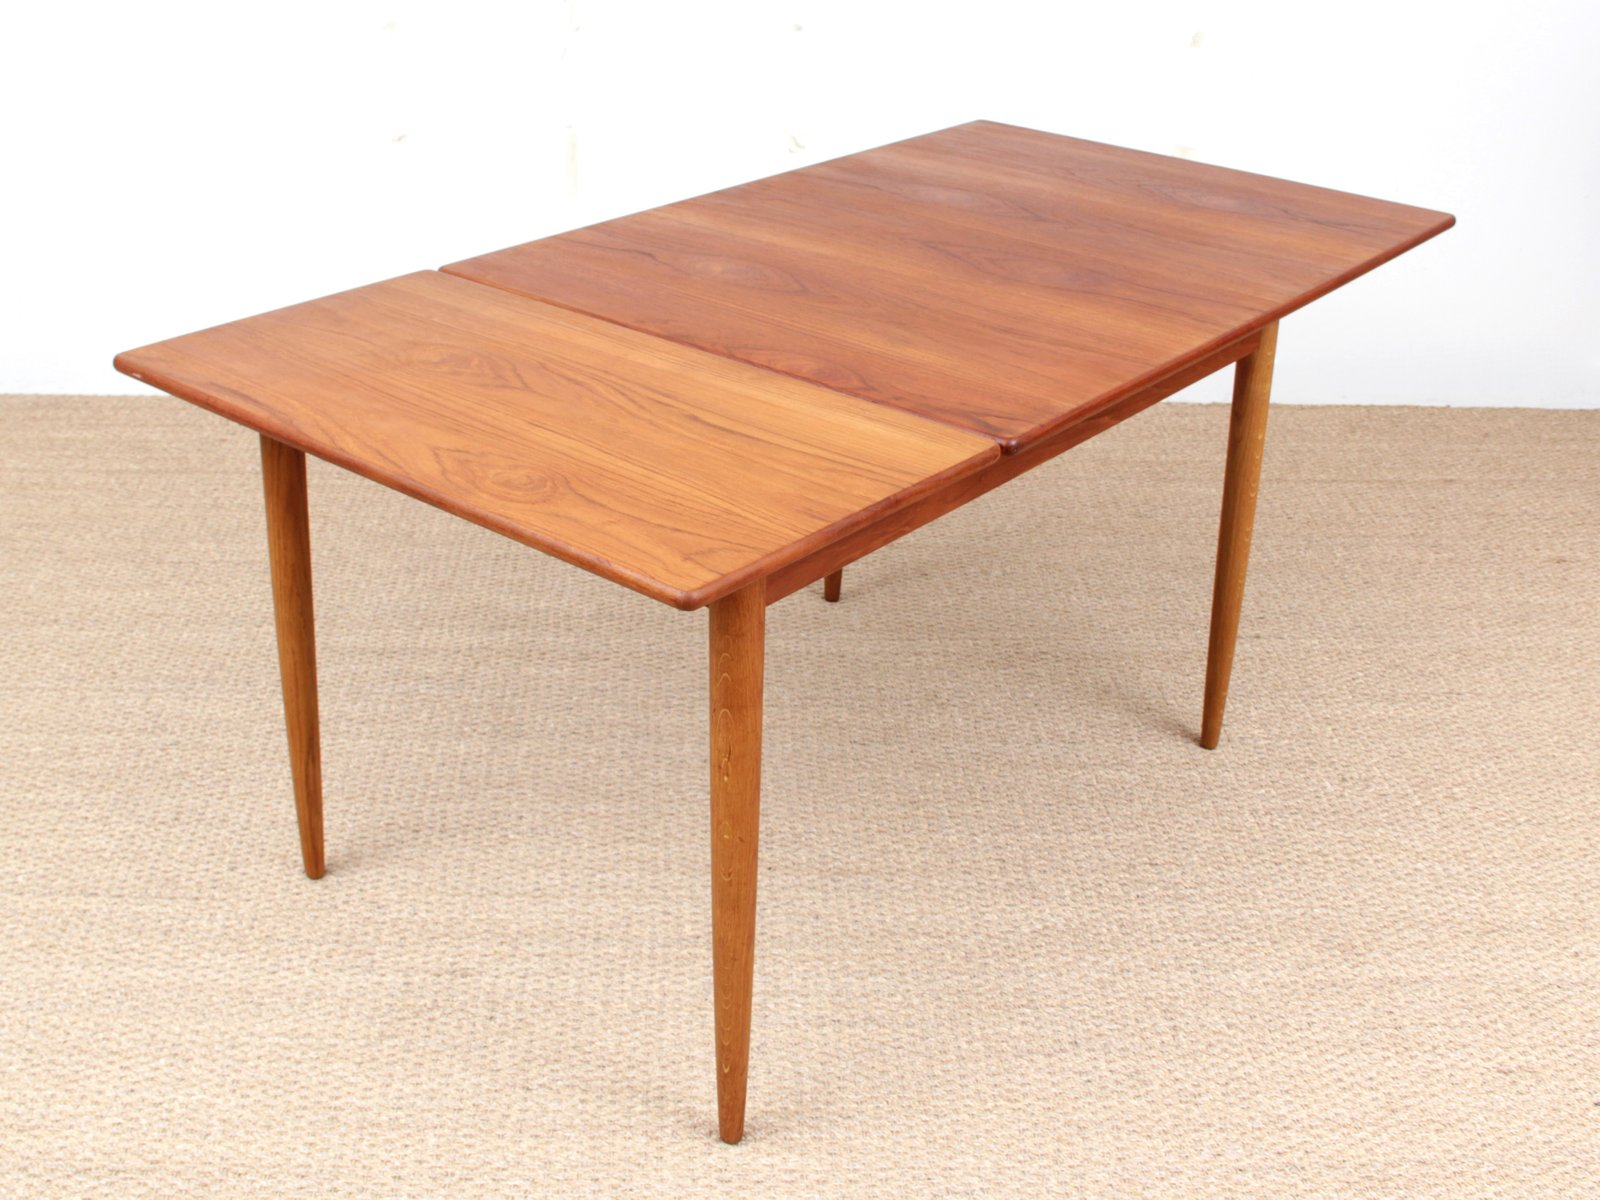 Scandinavian dining table by yngve ekstr m for hugo troeds 1950s for sale at pamono - Dining table scandinavian ...